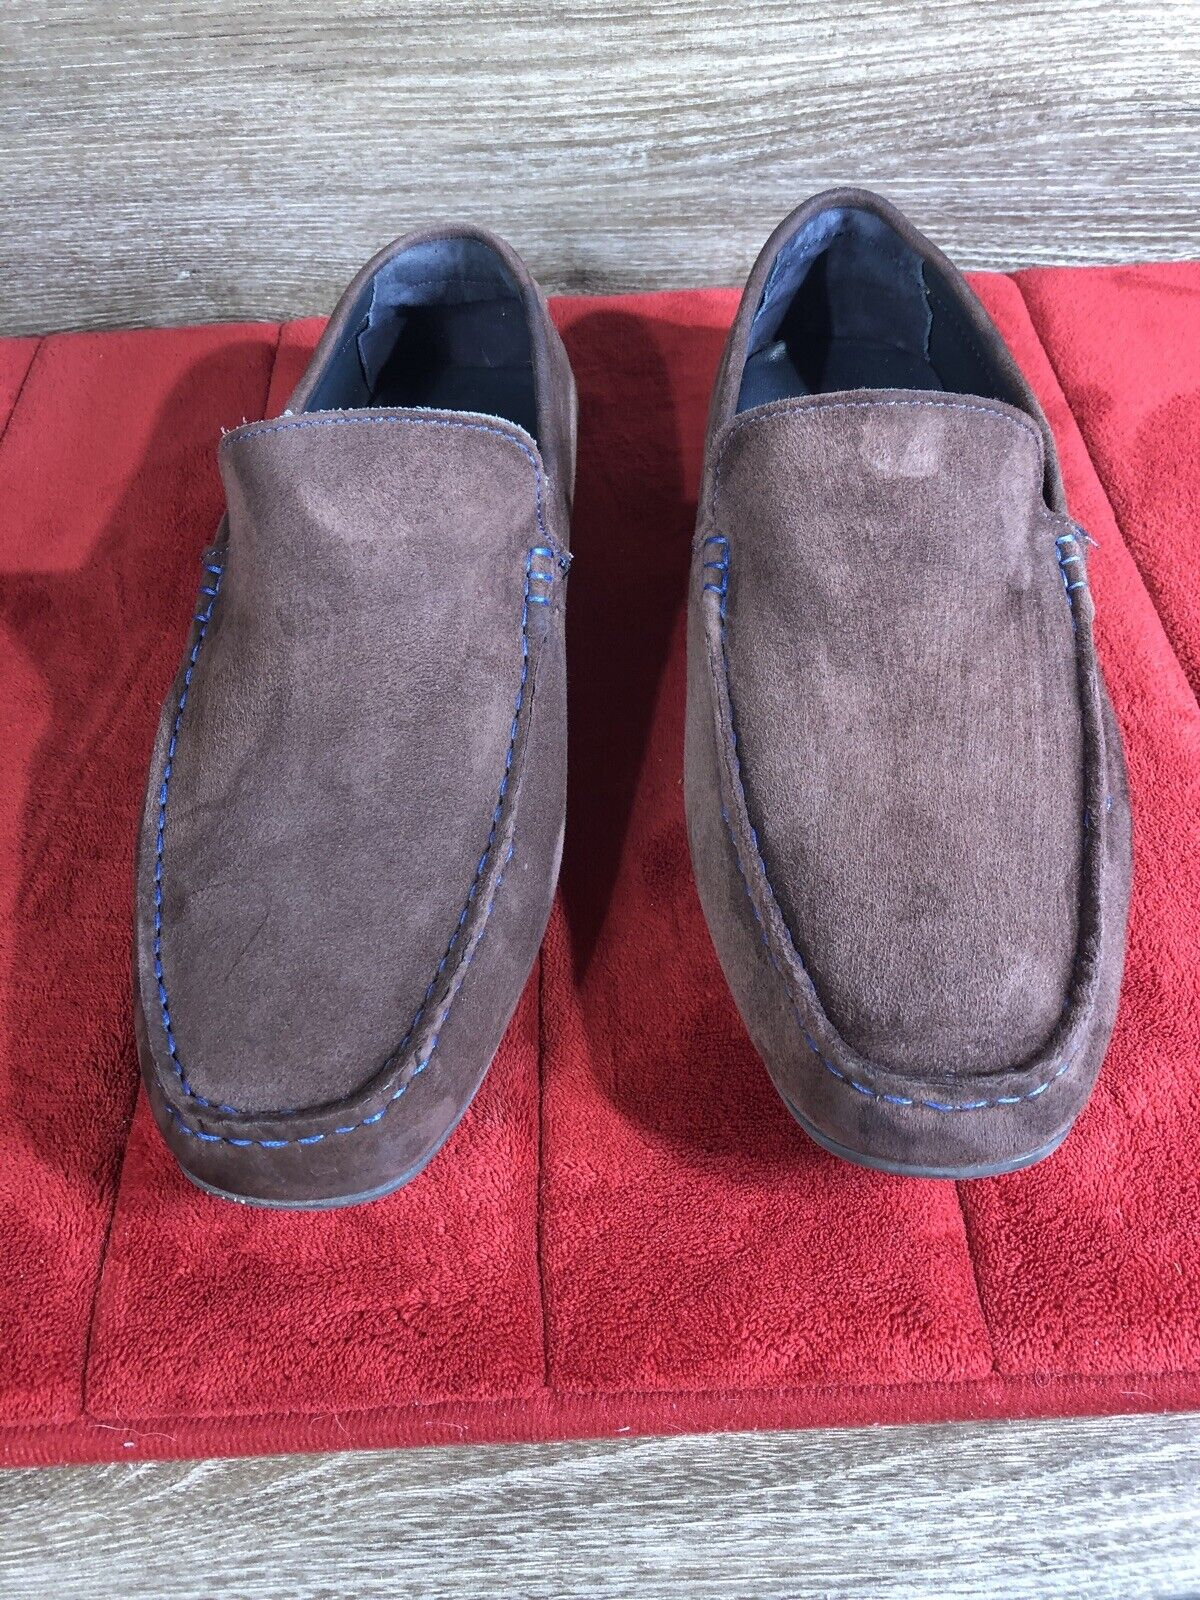 MENS JOSEPH ABBOUD BROWN LOAFERS 91020 US SIZE 12 NICE